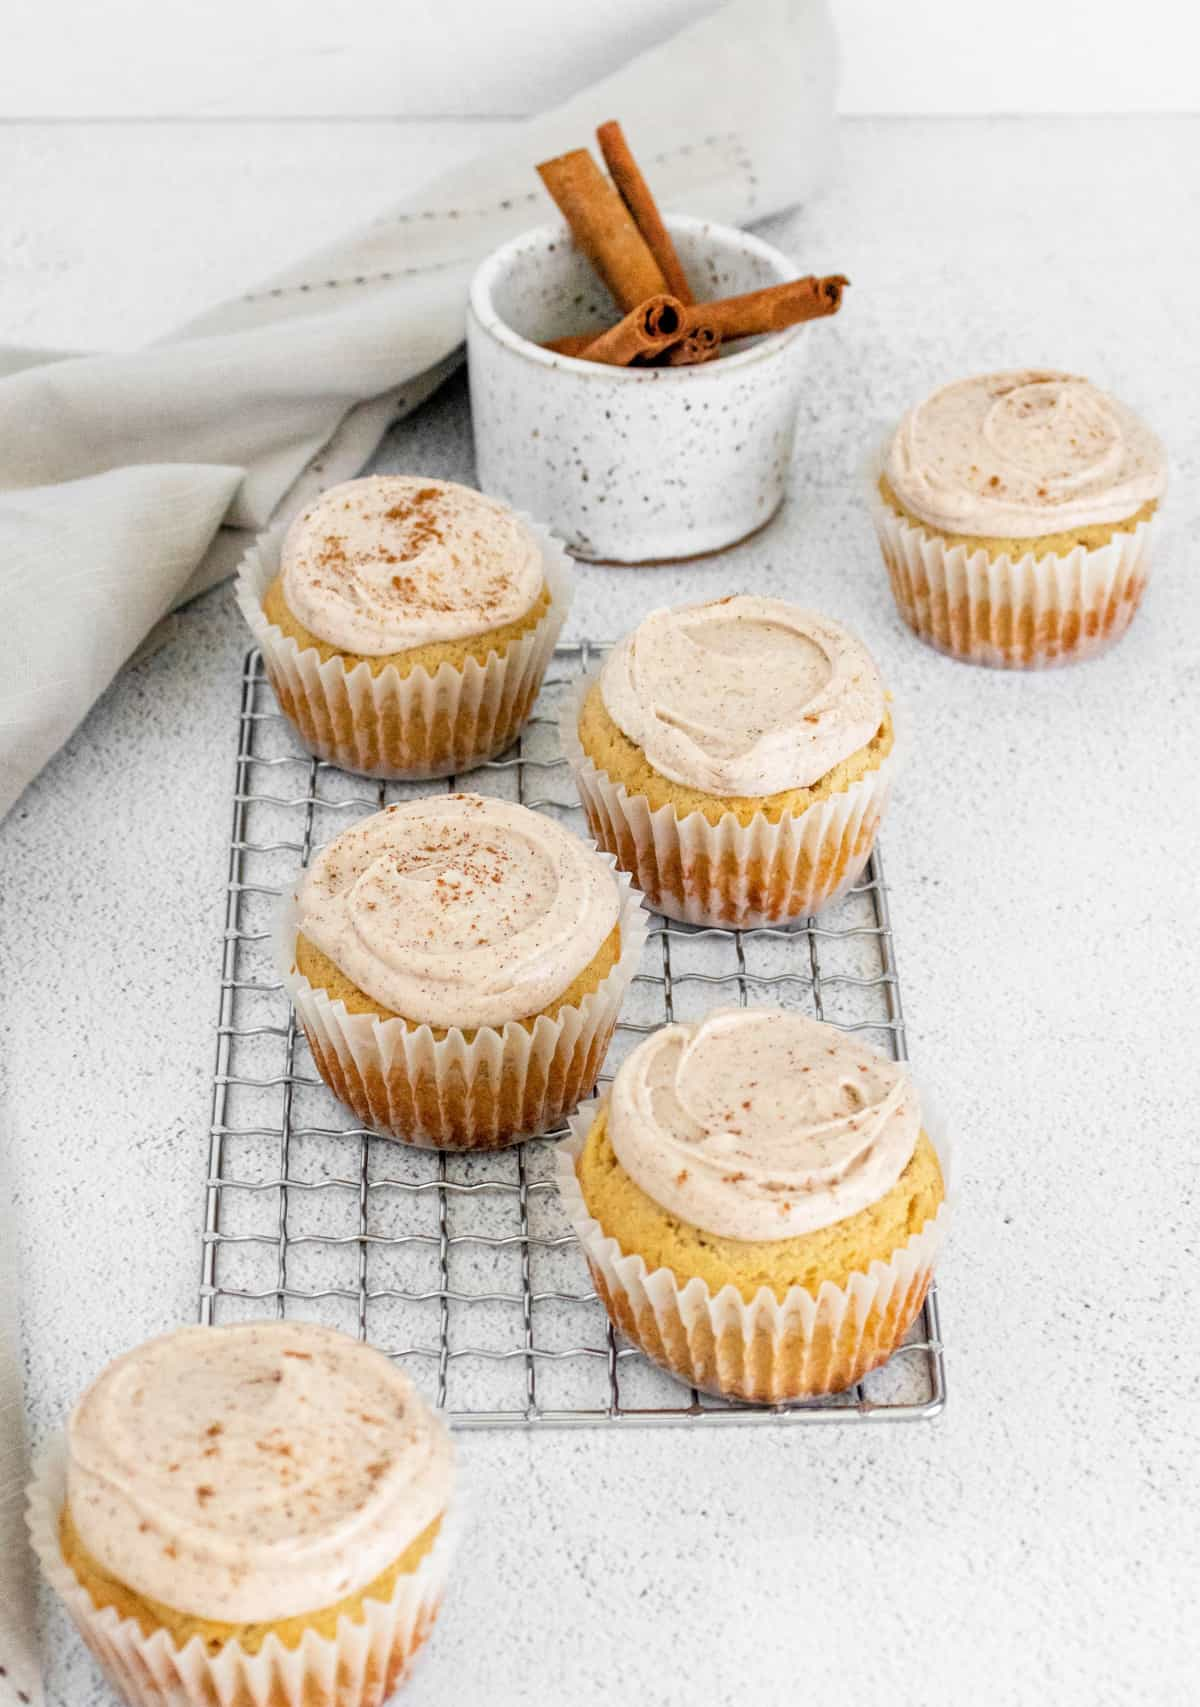 Frosted Cinnamon Cupcakes on wire rack with cinnamon sticks in background